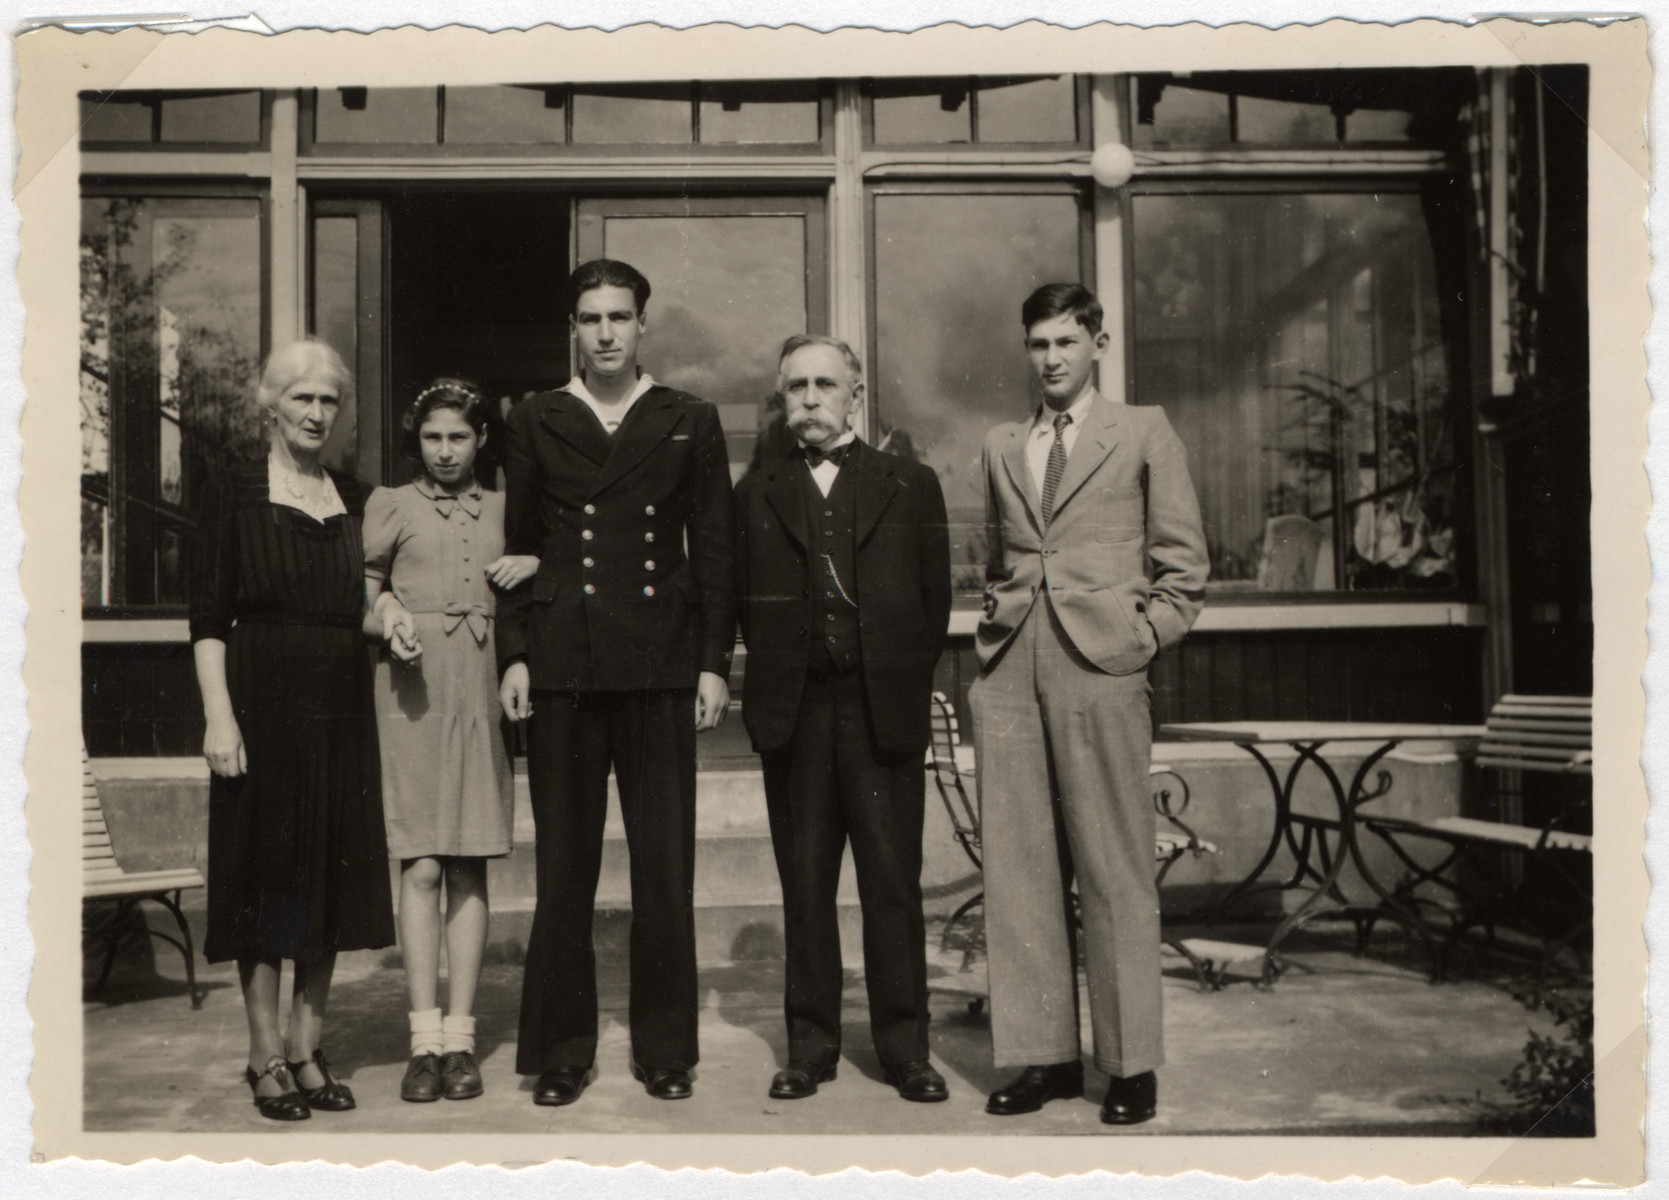 Members of the van Dam family poses for a group portrait after the war.  From left to right are Clara van Dam, Clary Vromen, Eric Besthoff (the son of Edith van Dam who served in the Dutch Marine Corps during the latter half of the war), Isidoor van Dam and Jaap Vromen.